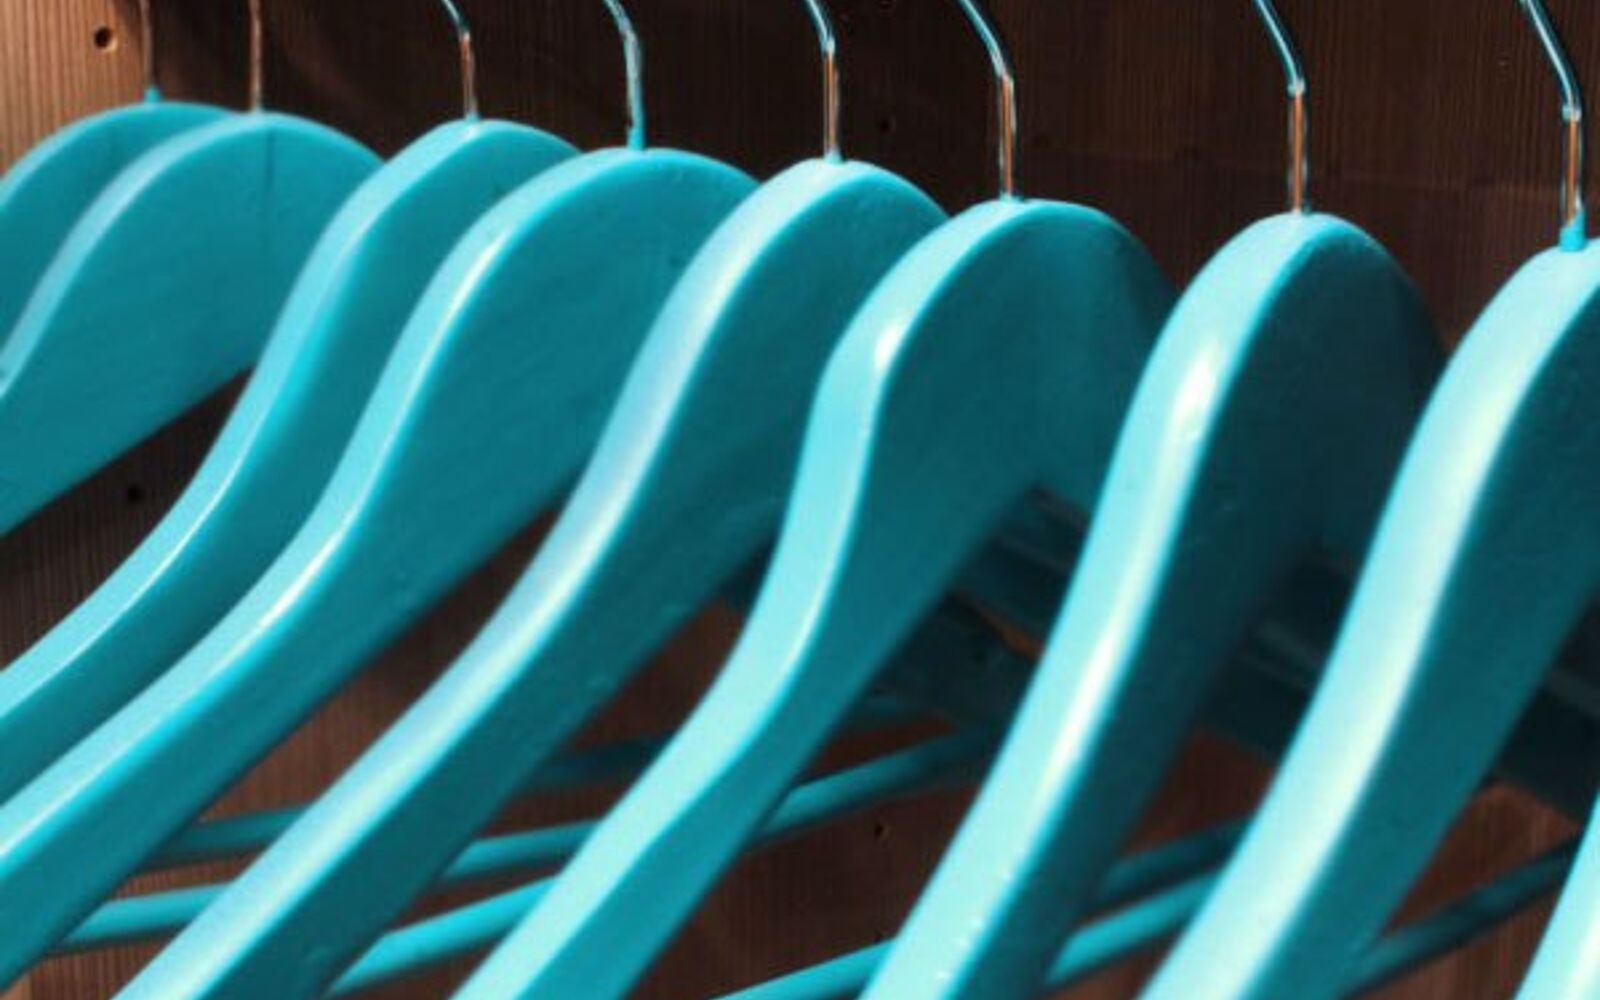 s post, Decorate Your Hangers With A Bright Color